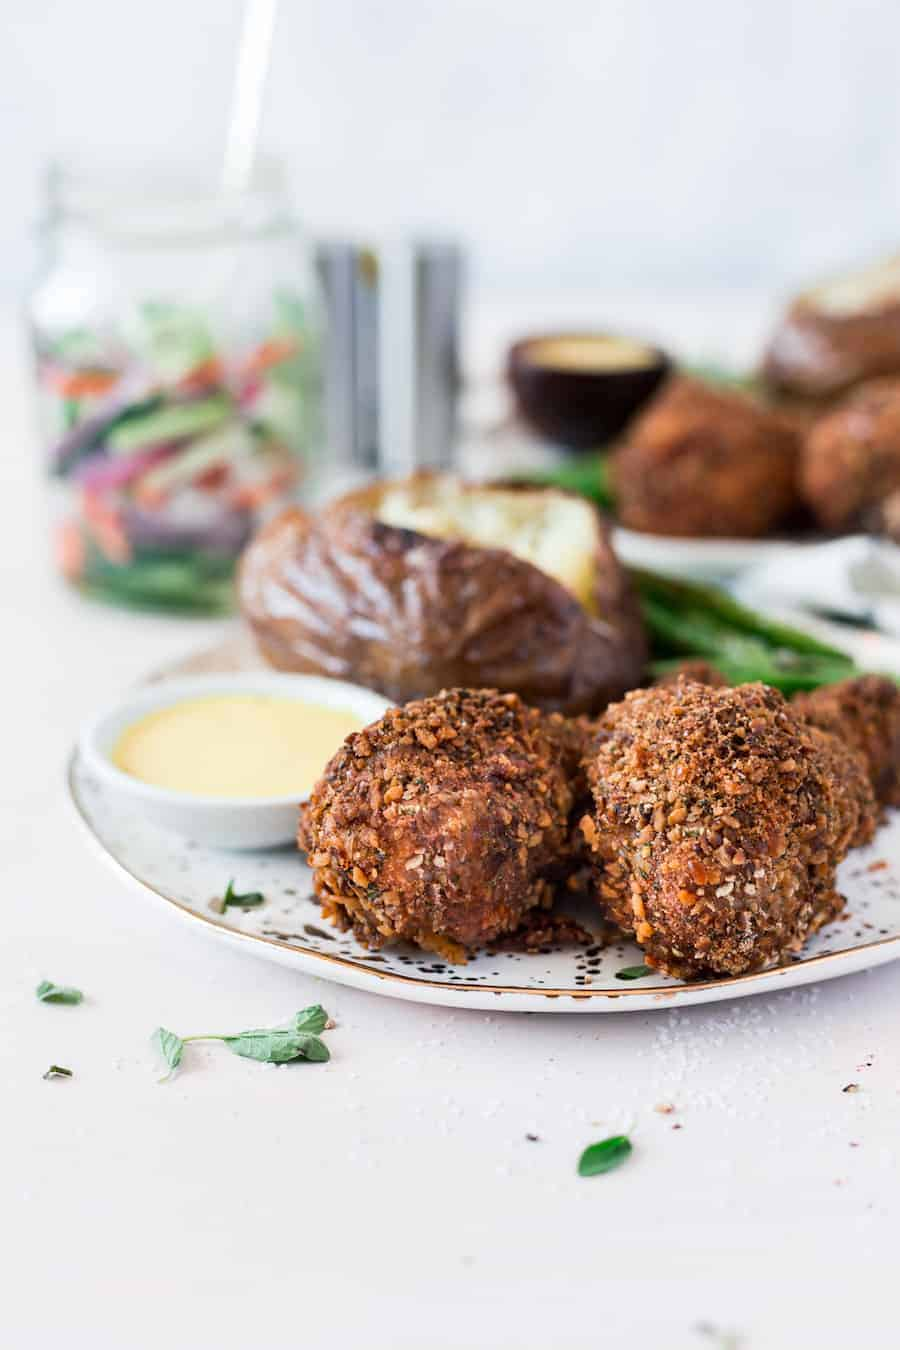 Crispy baked chicken drumsticks recipe made with a homemade pretzel coating that makes the crispiest chicken legs on the block! No frying needed! #chicken #dinner #chickenlegs